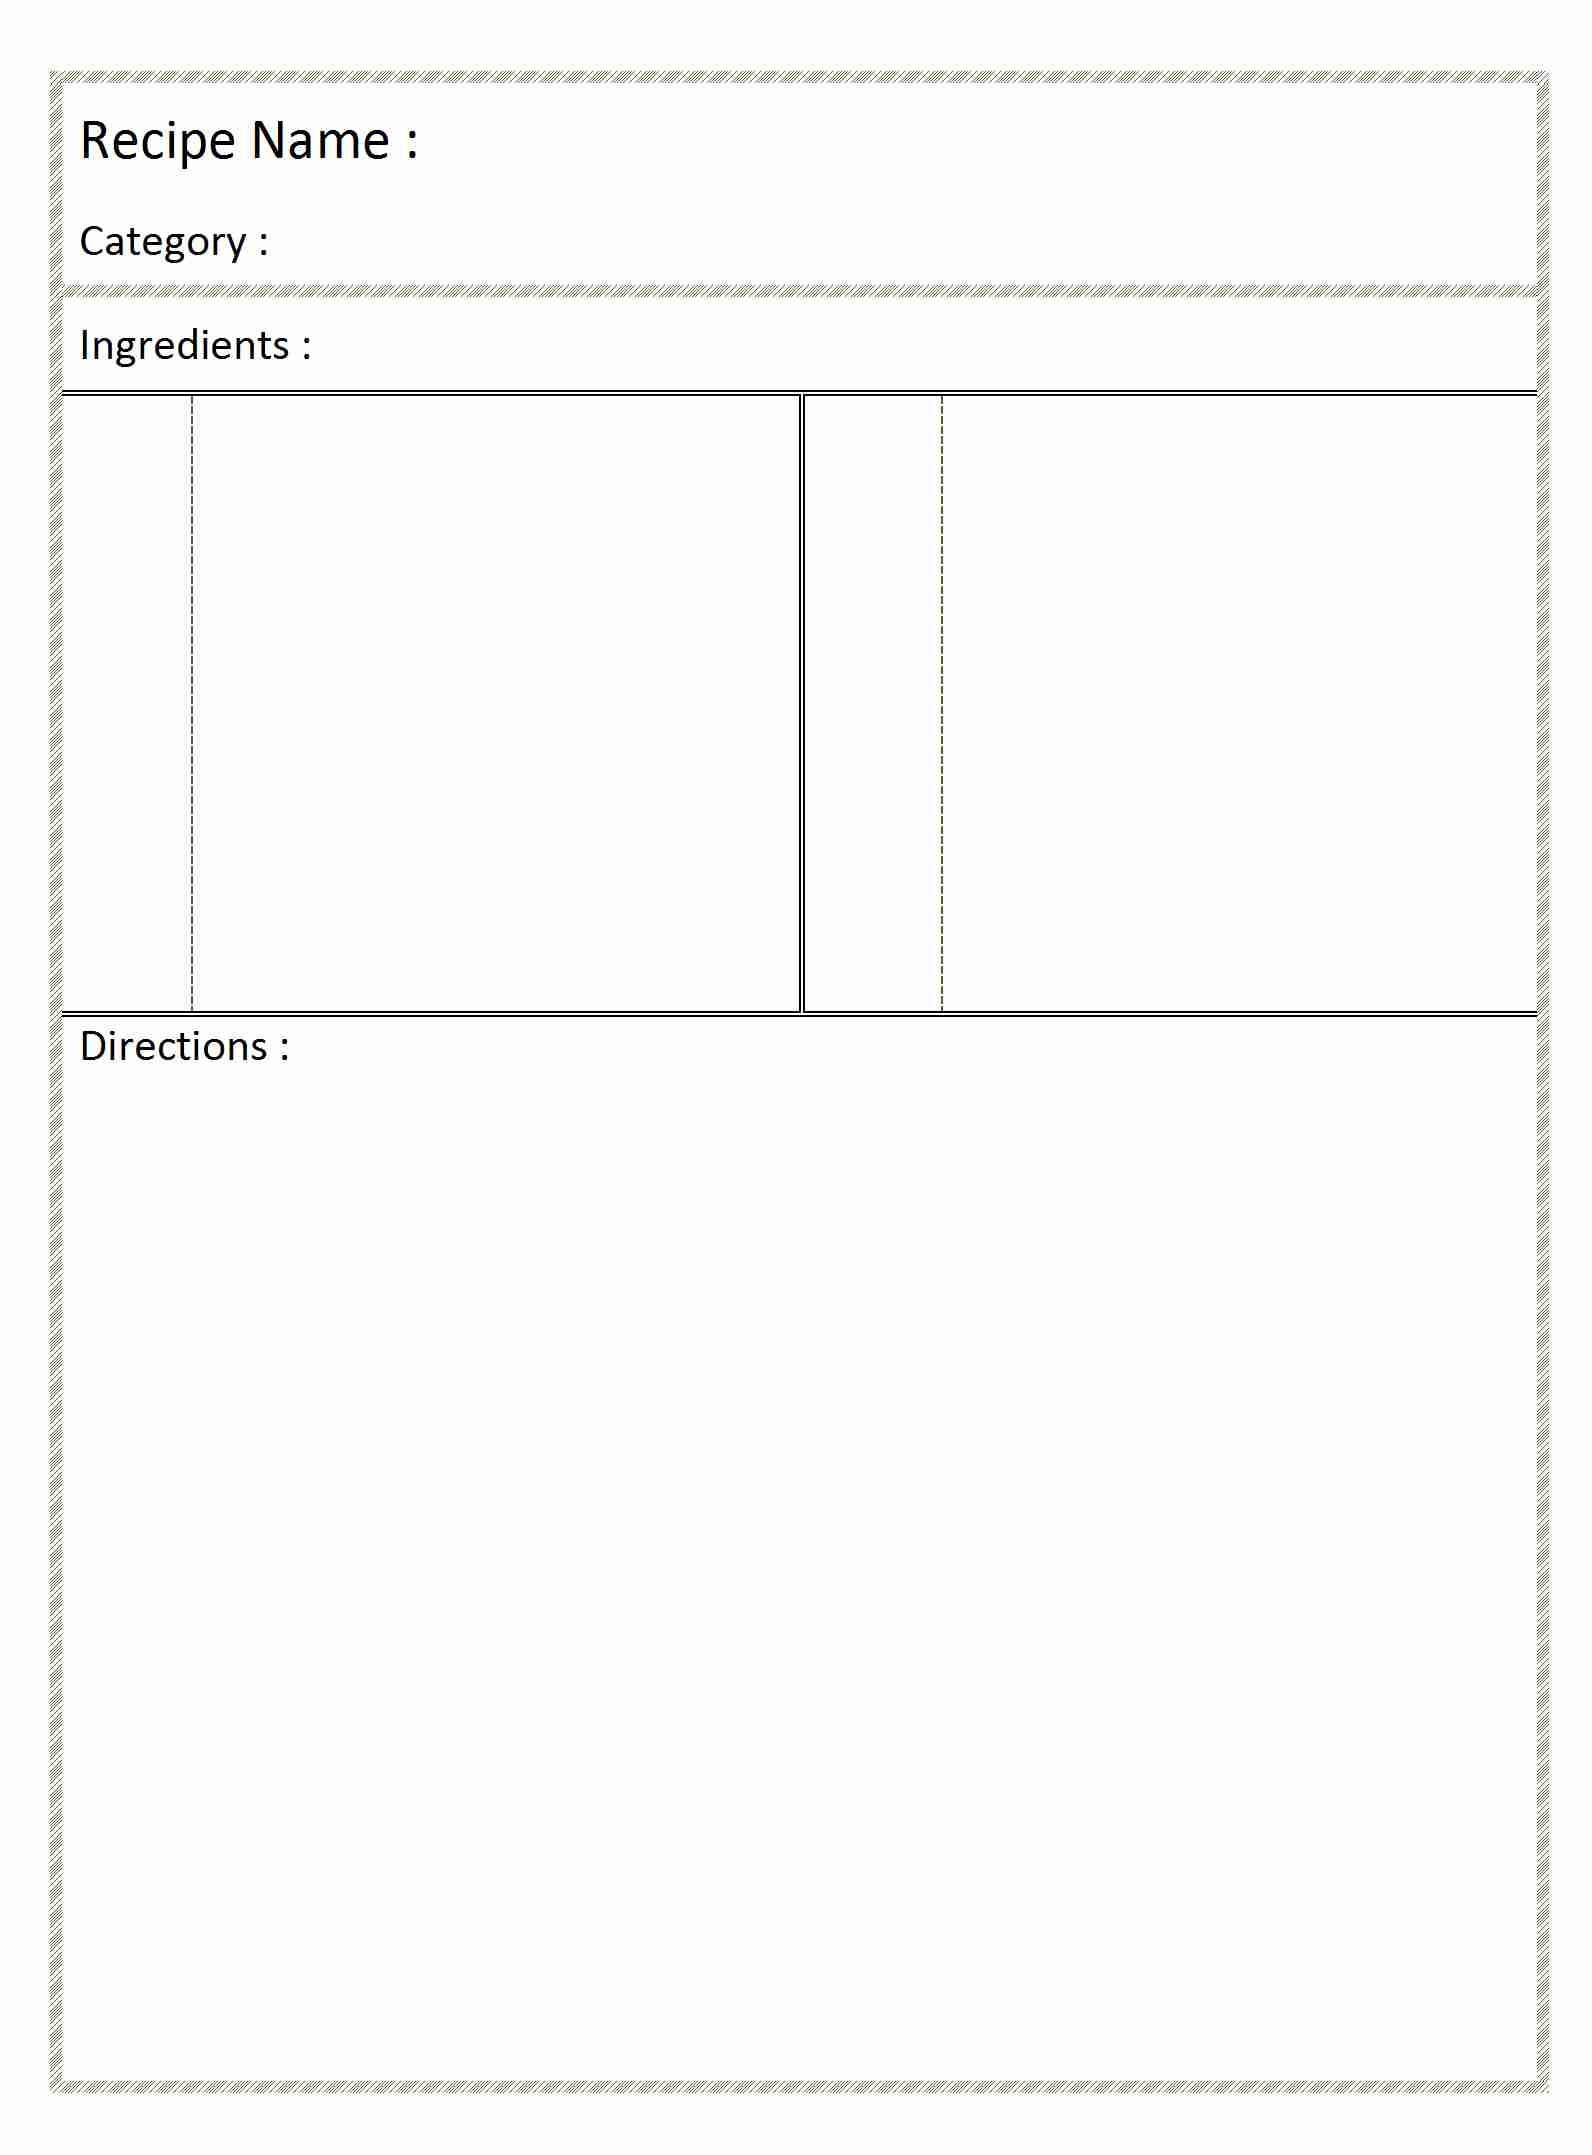 word recipe card template – Microsoft Office Recipe Card Template